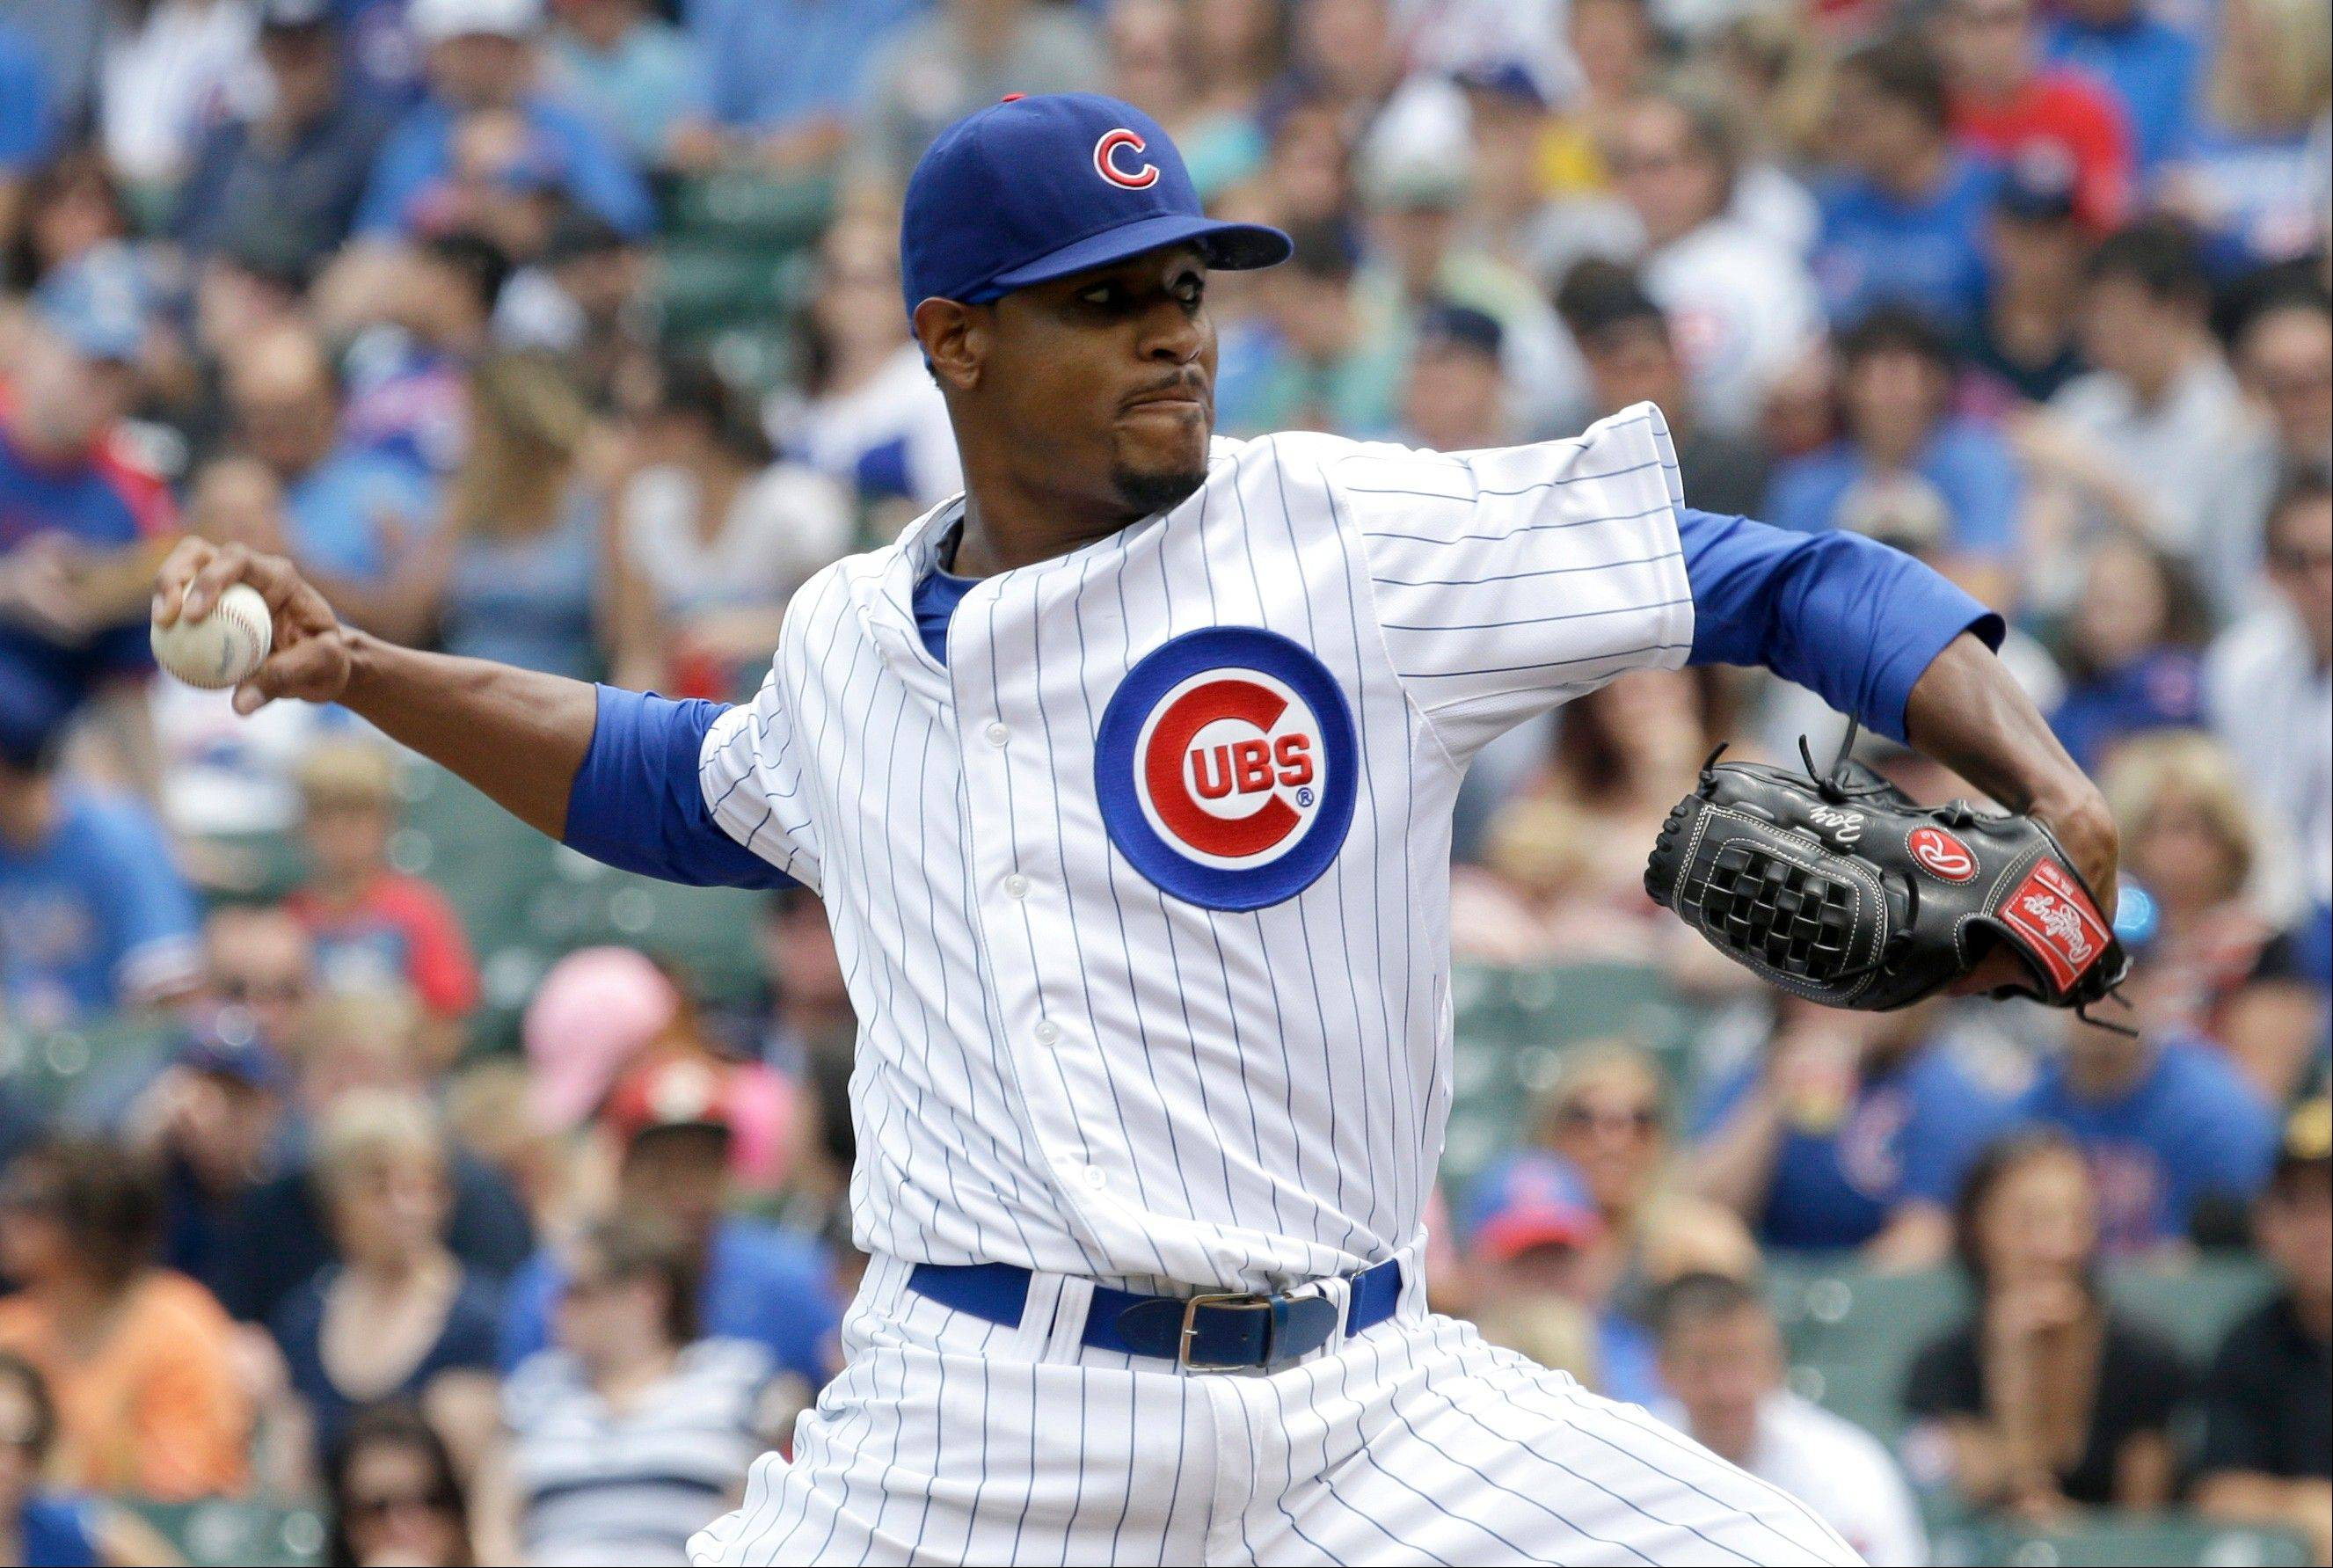 Cubs' Jackson escapes 'bubble' for at least one game